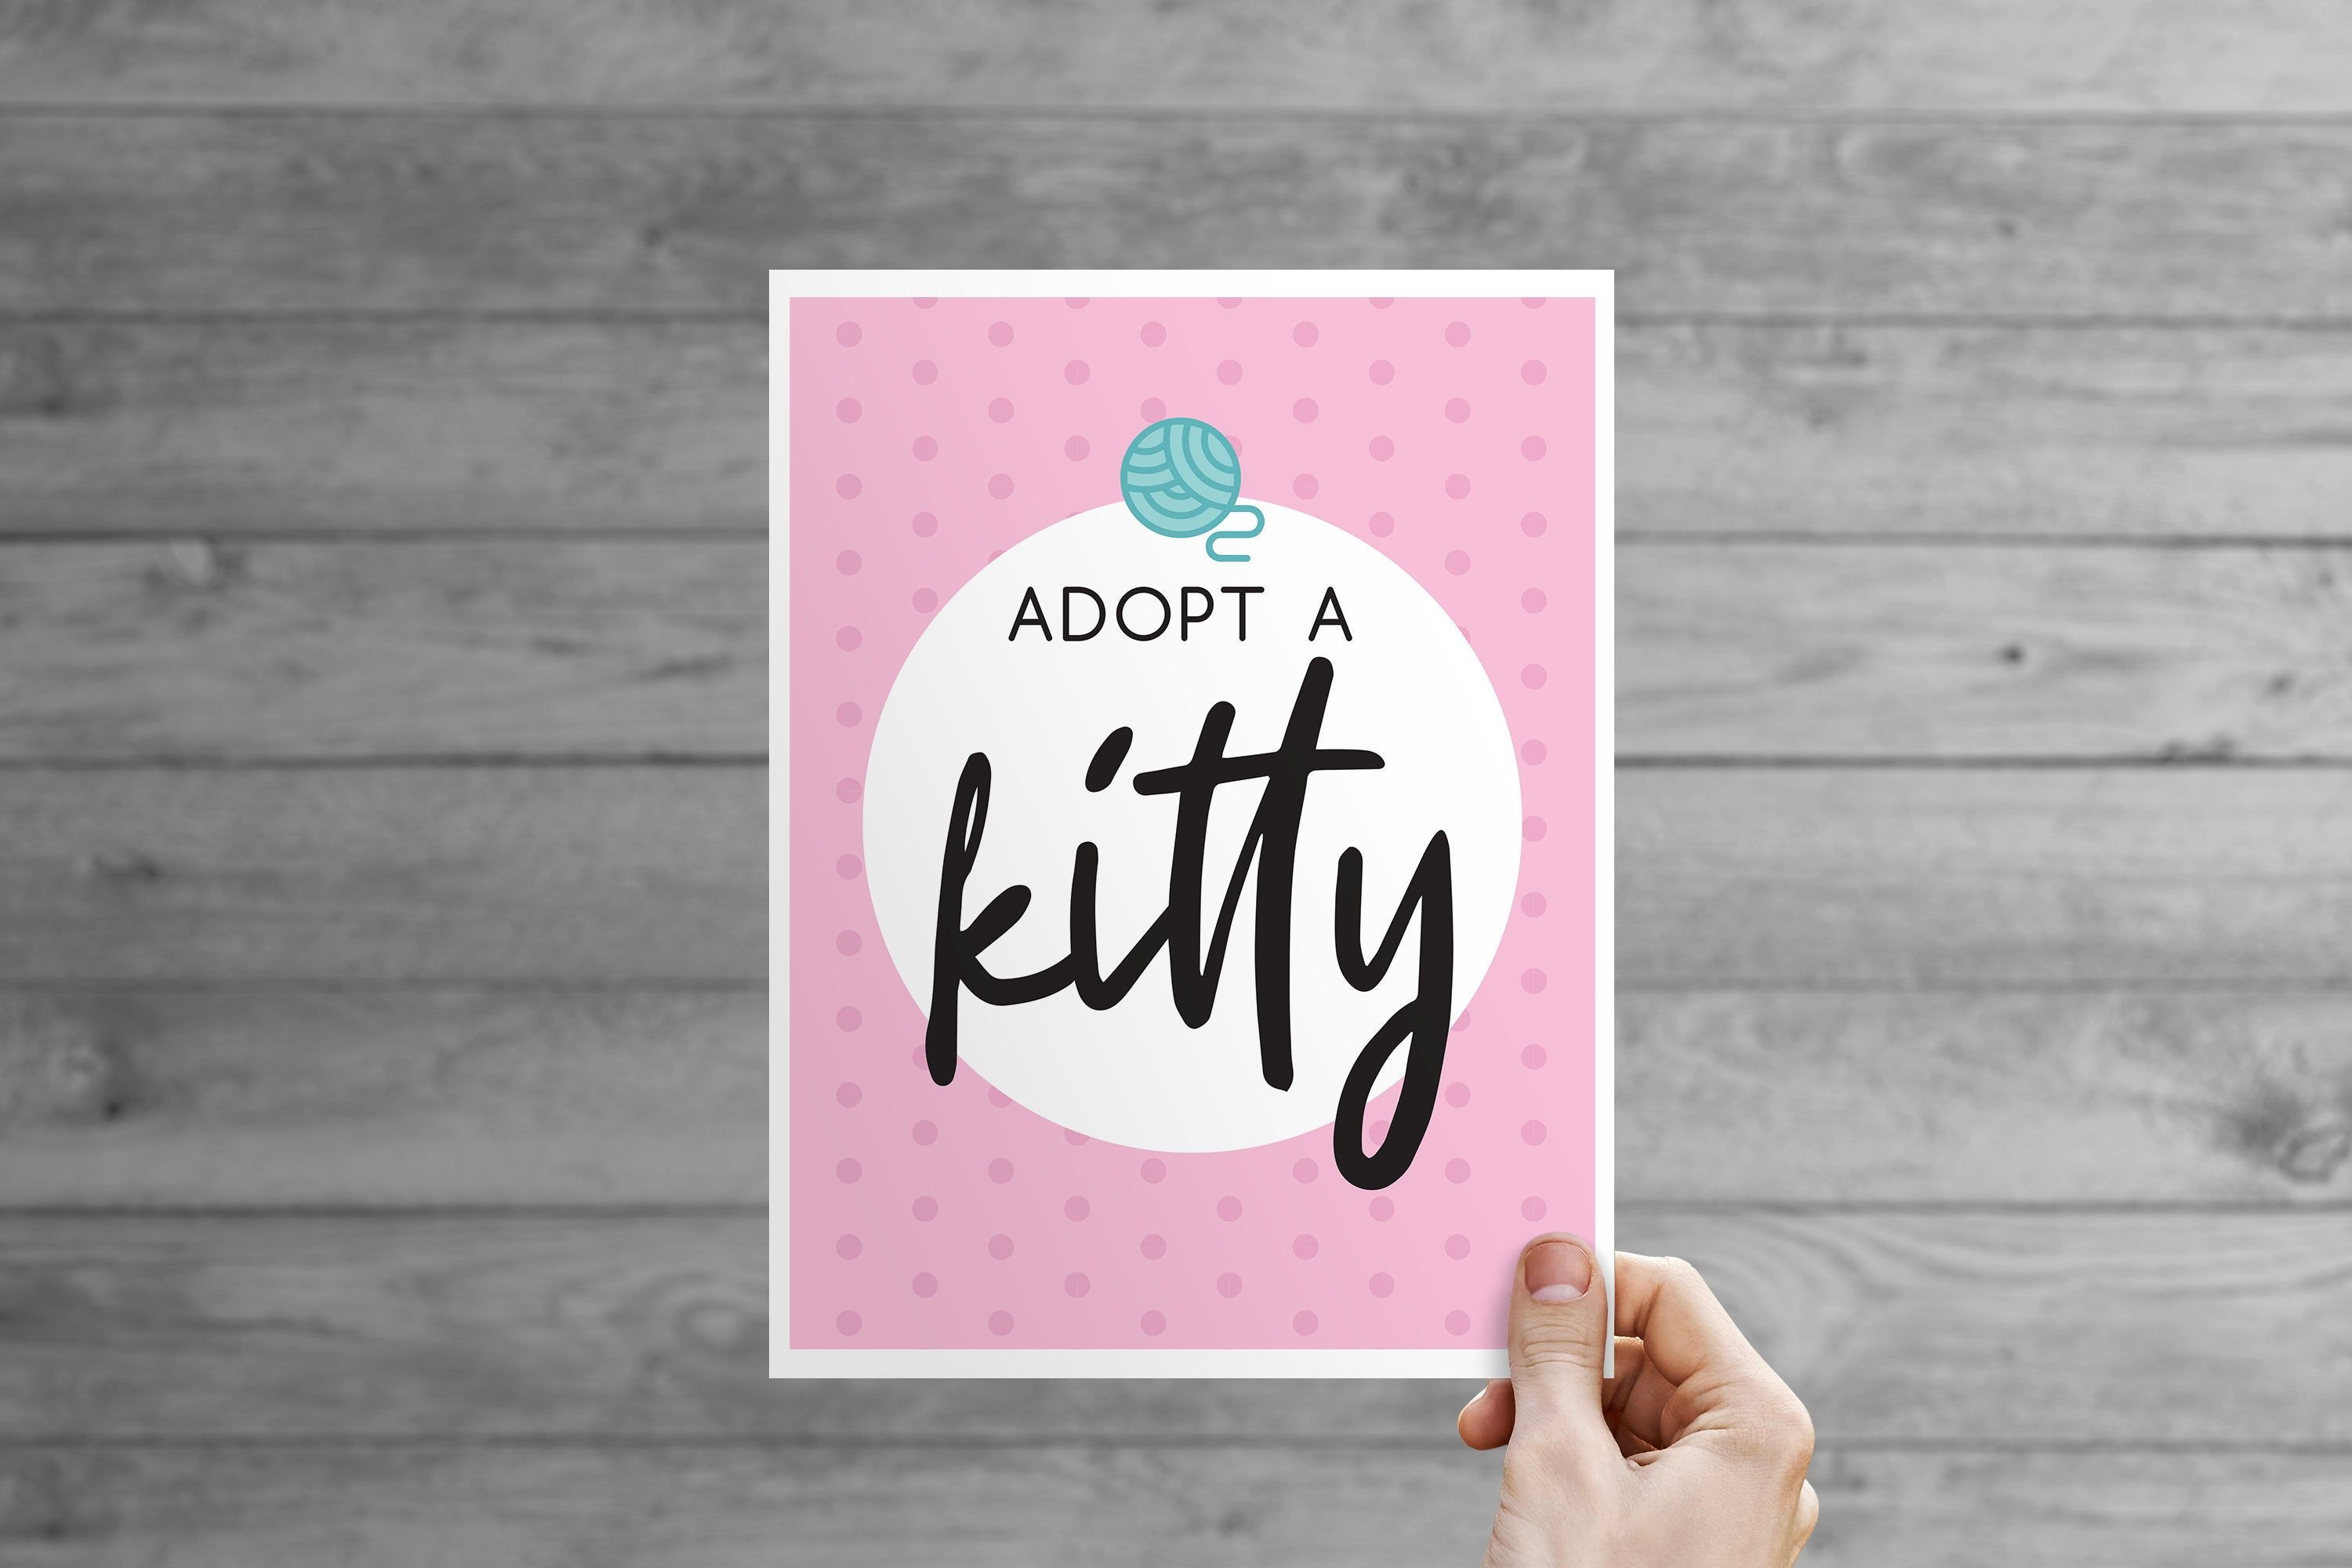 Kitty Kitten Cat Adoption Table Sign Etsy In 2020 Cat Adoption Cats And Kittens Cat Themed Parties